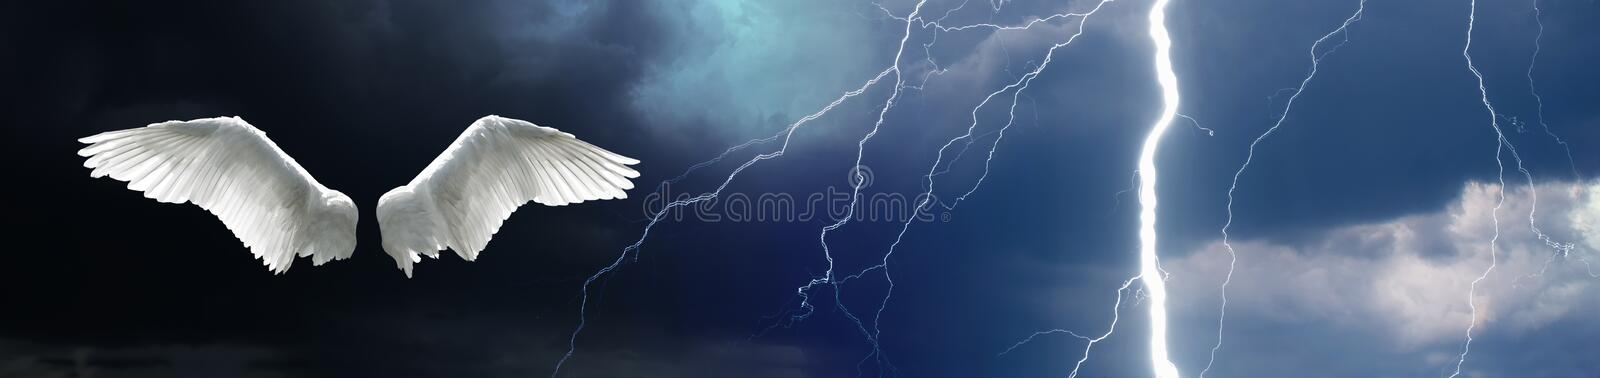 Angel wings with stormy sky background royalty free stock image